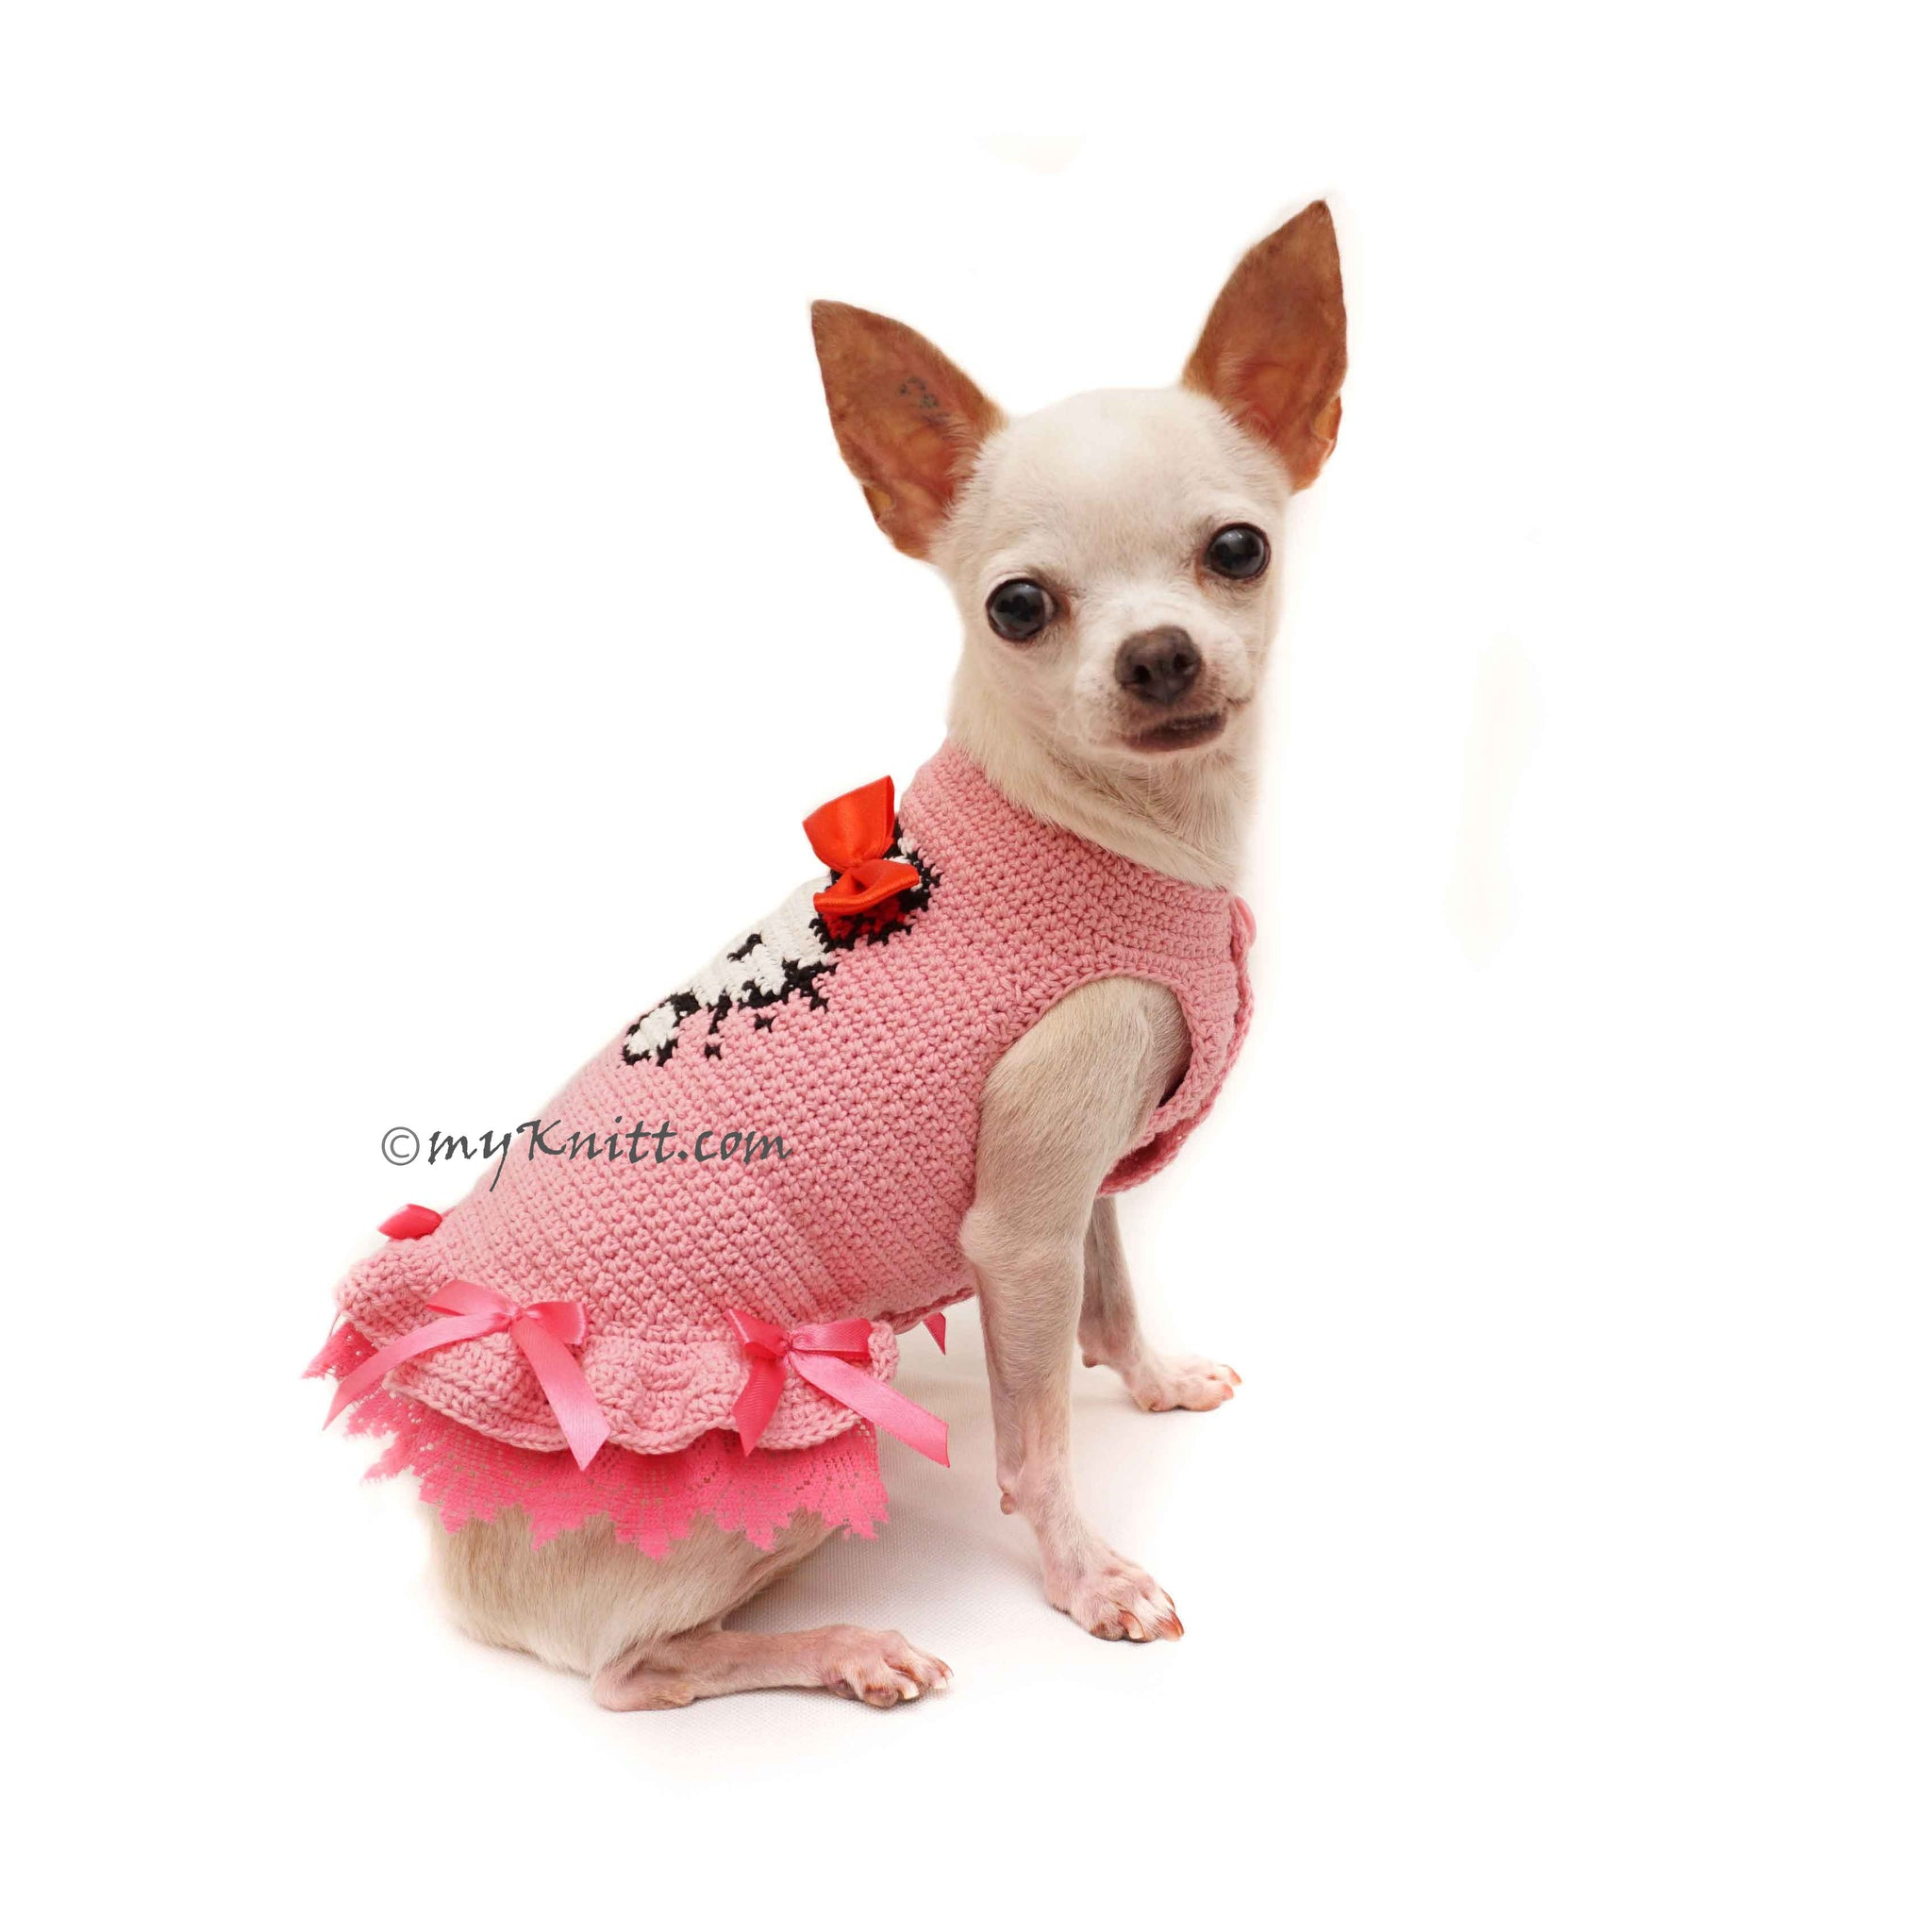 d6462bcab759 Hello Kitty Girl Dog Dresses, Crochet Dog Sweater DF114 - Myknitt ...